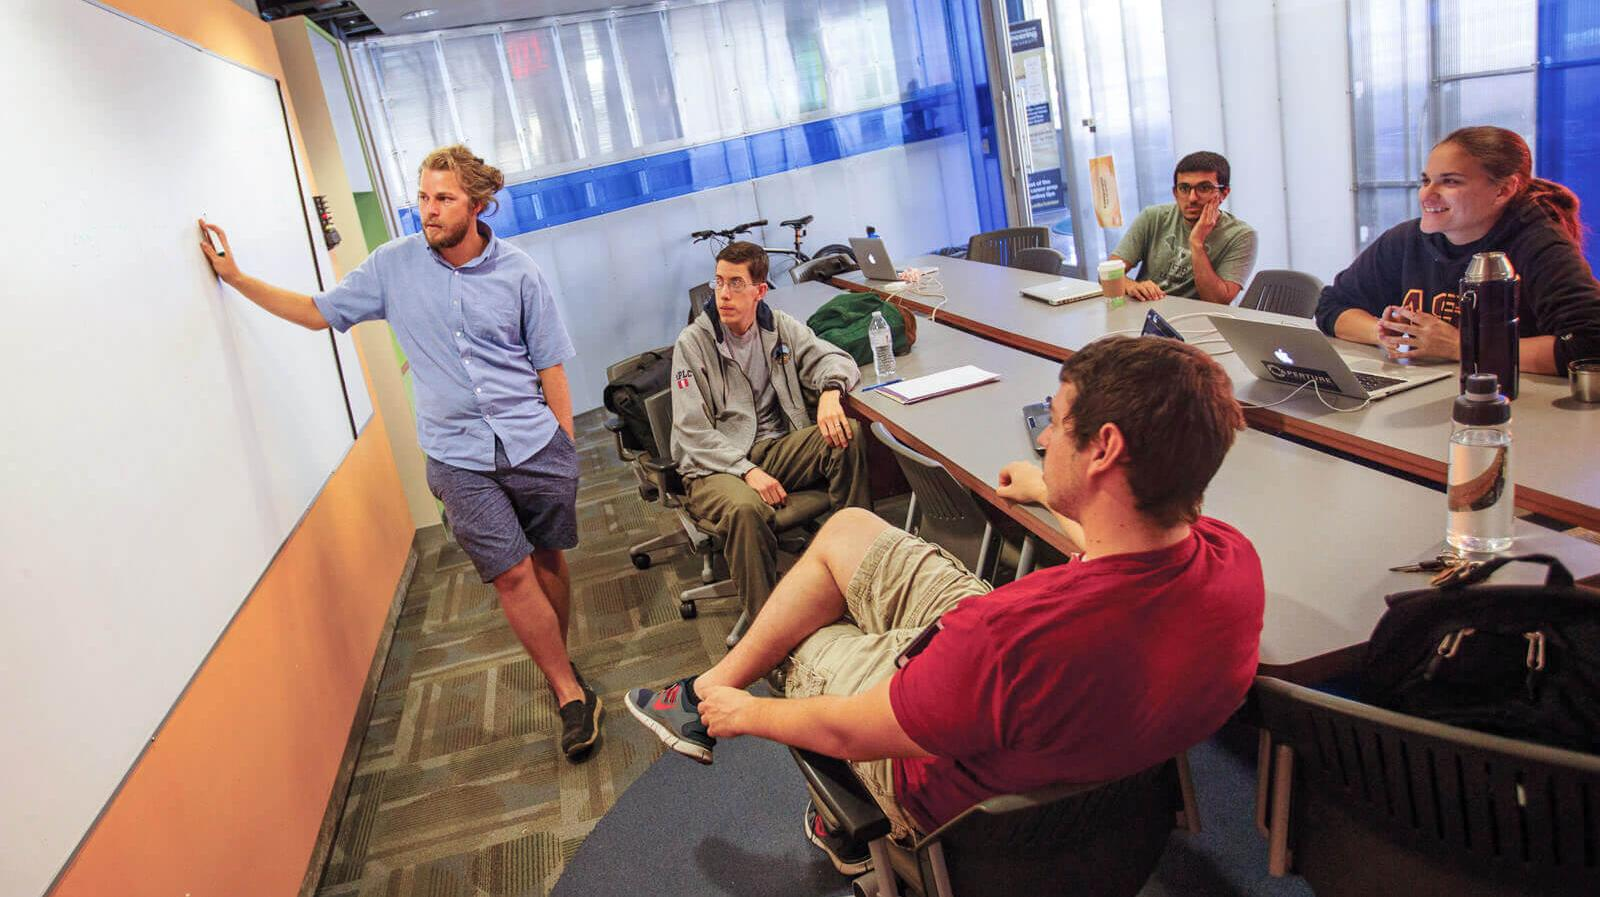 Students in a startup discuss ideas around a whiteboard